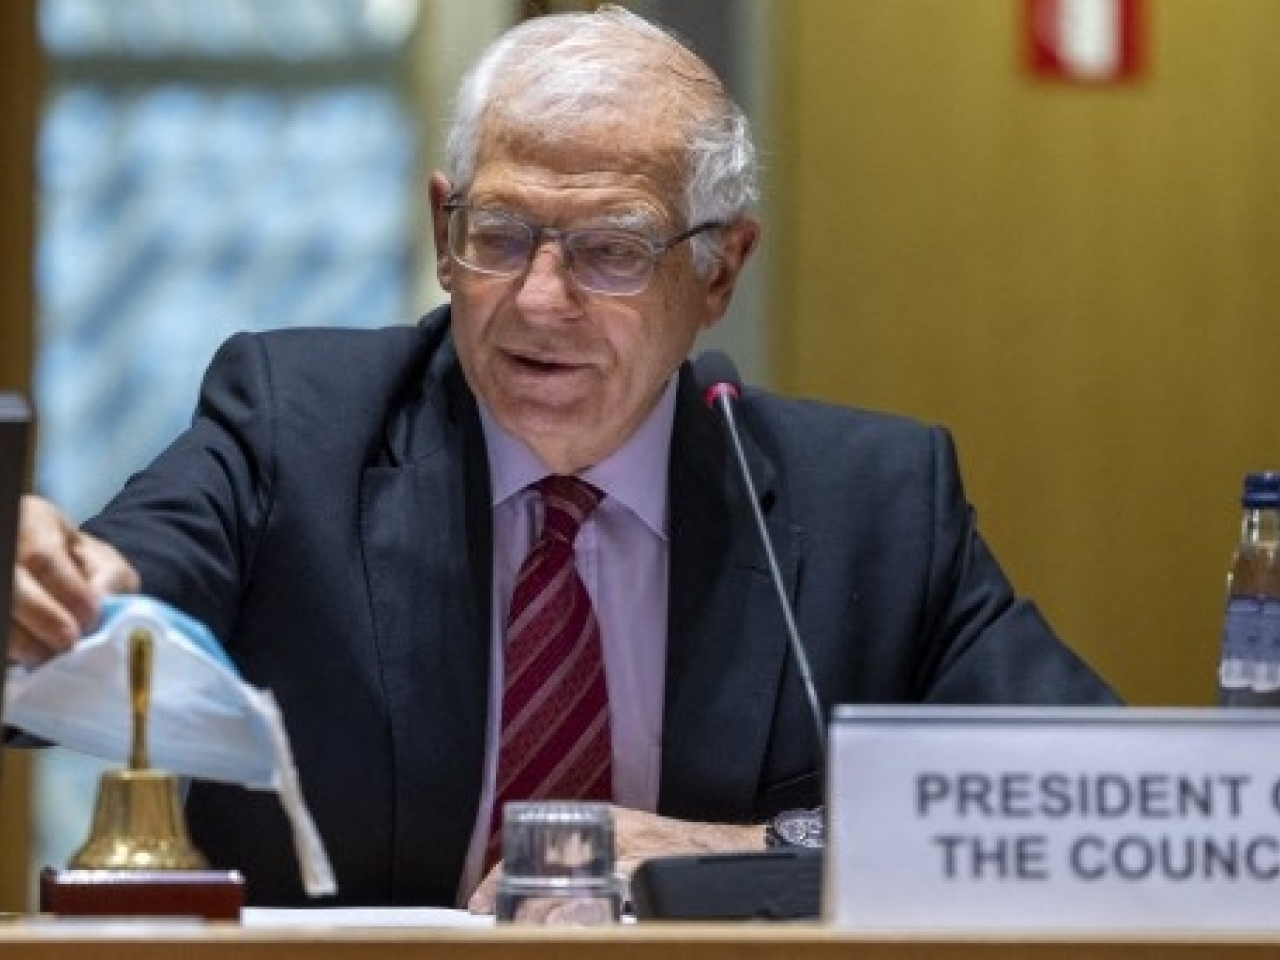 The EU said it would intensify its response in a statement released through the bloc's top diplomat Josep Borrell. Photo: AFP